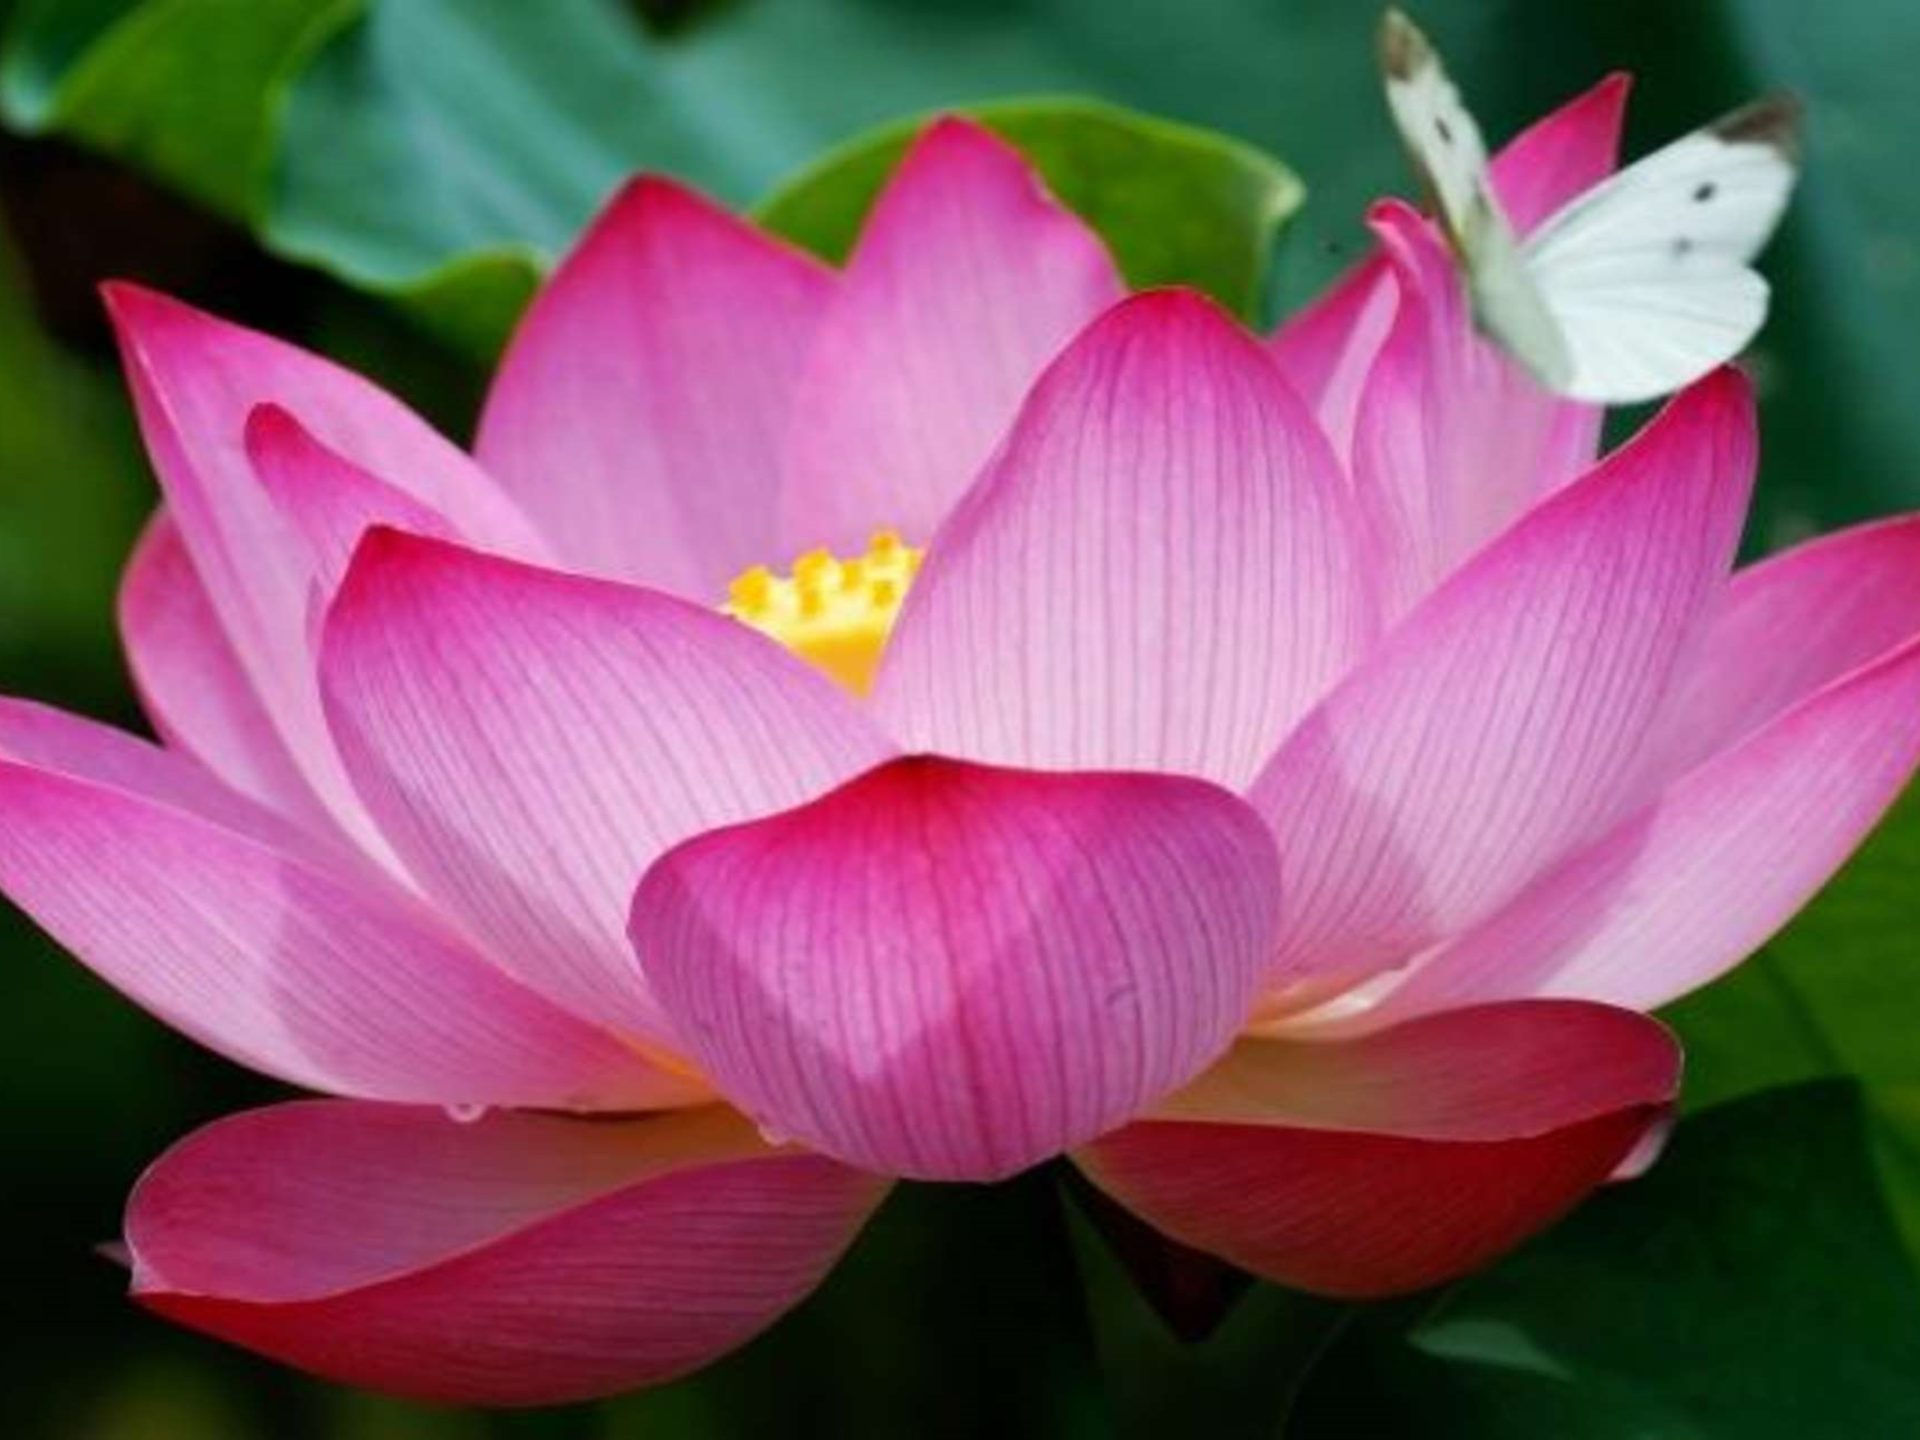 Gold Iphone X Wallpaper Pink Lotus Flowers And A Butterfly Hd Wallpaper 72i38